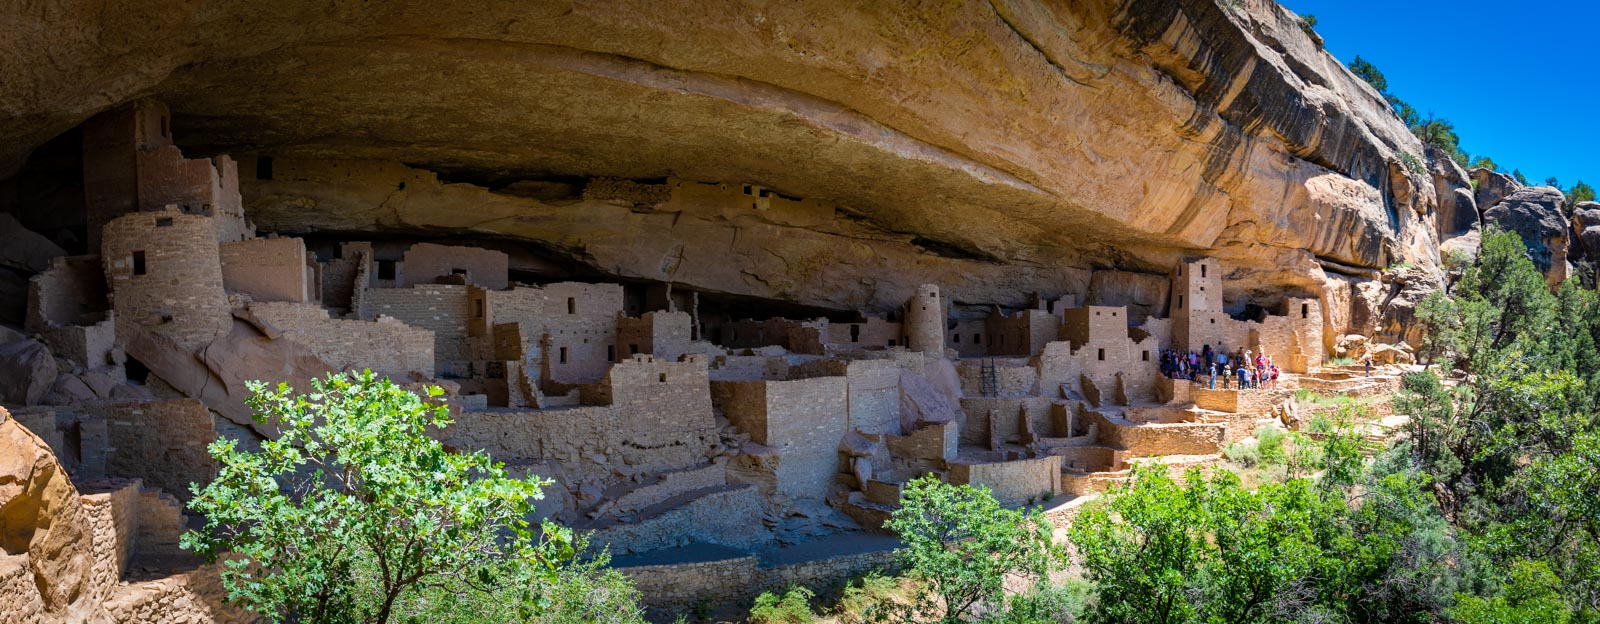 Cliff Palace!